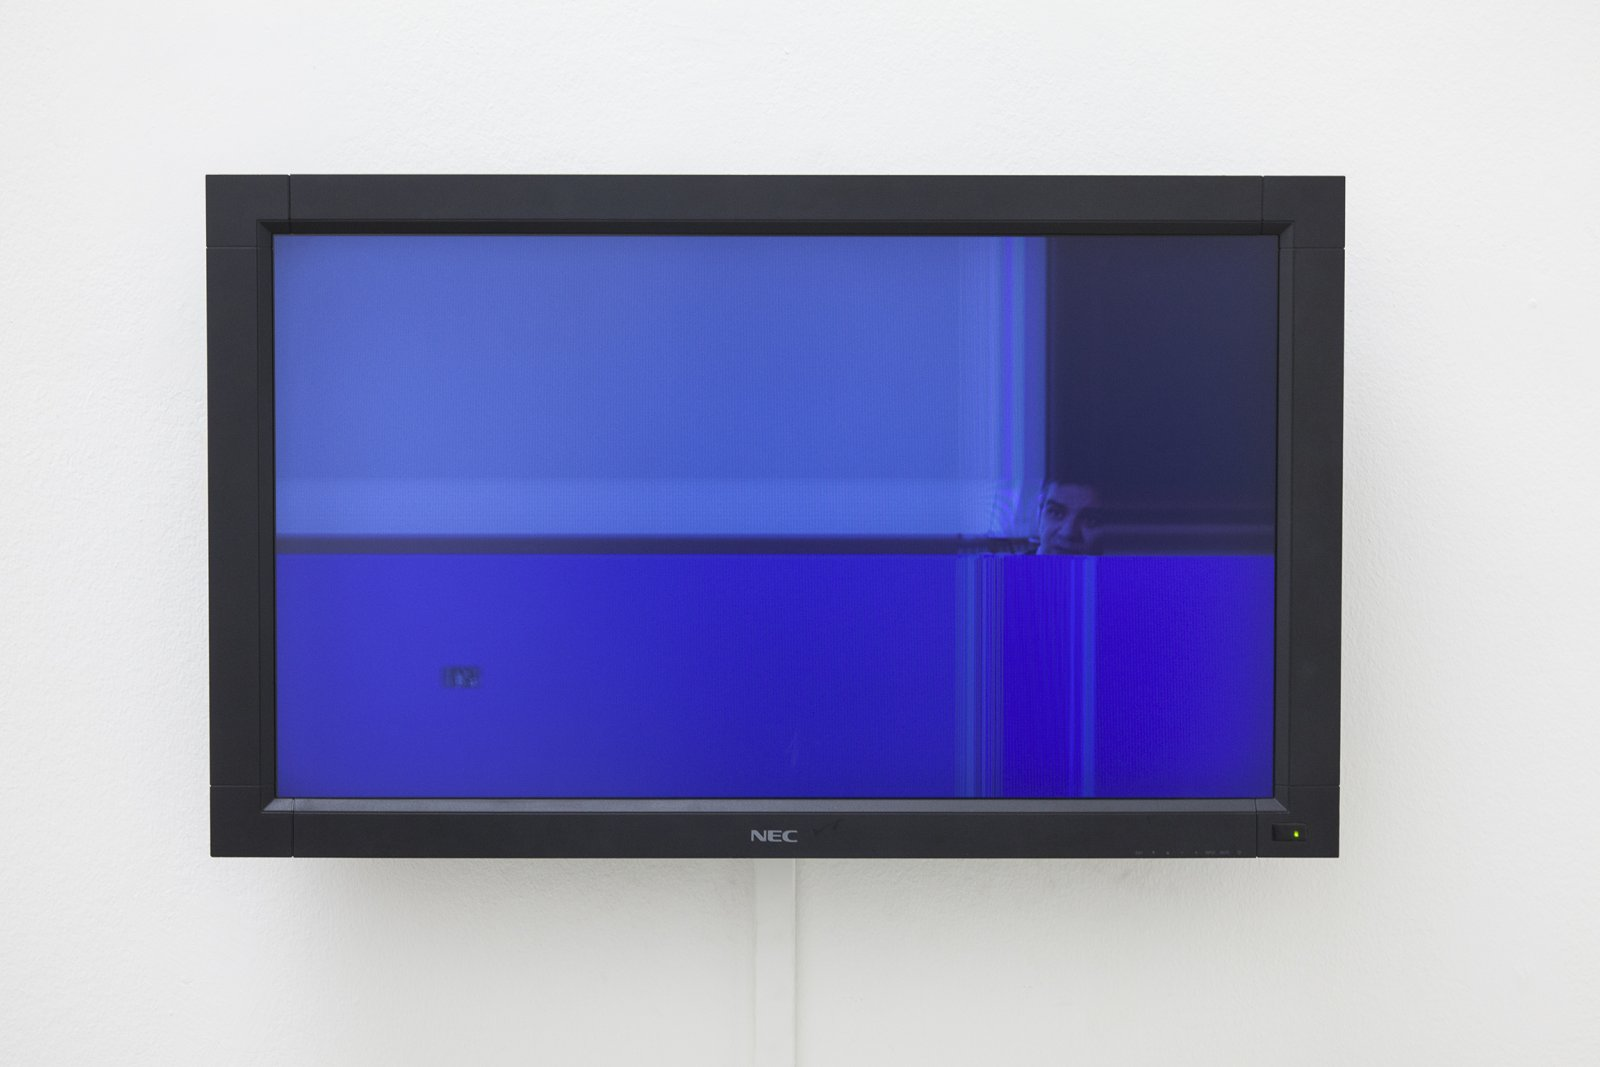 Judy Radul, A CONTAINER CONTAINING NOT ONE TV (detail), 2013, mixed media, dimensions variable. Installation view, ThisisTelevision,Daadgalerie,Berlin,Germany, 2013 by Judy Radul